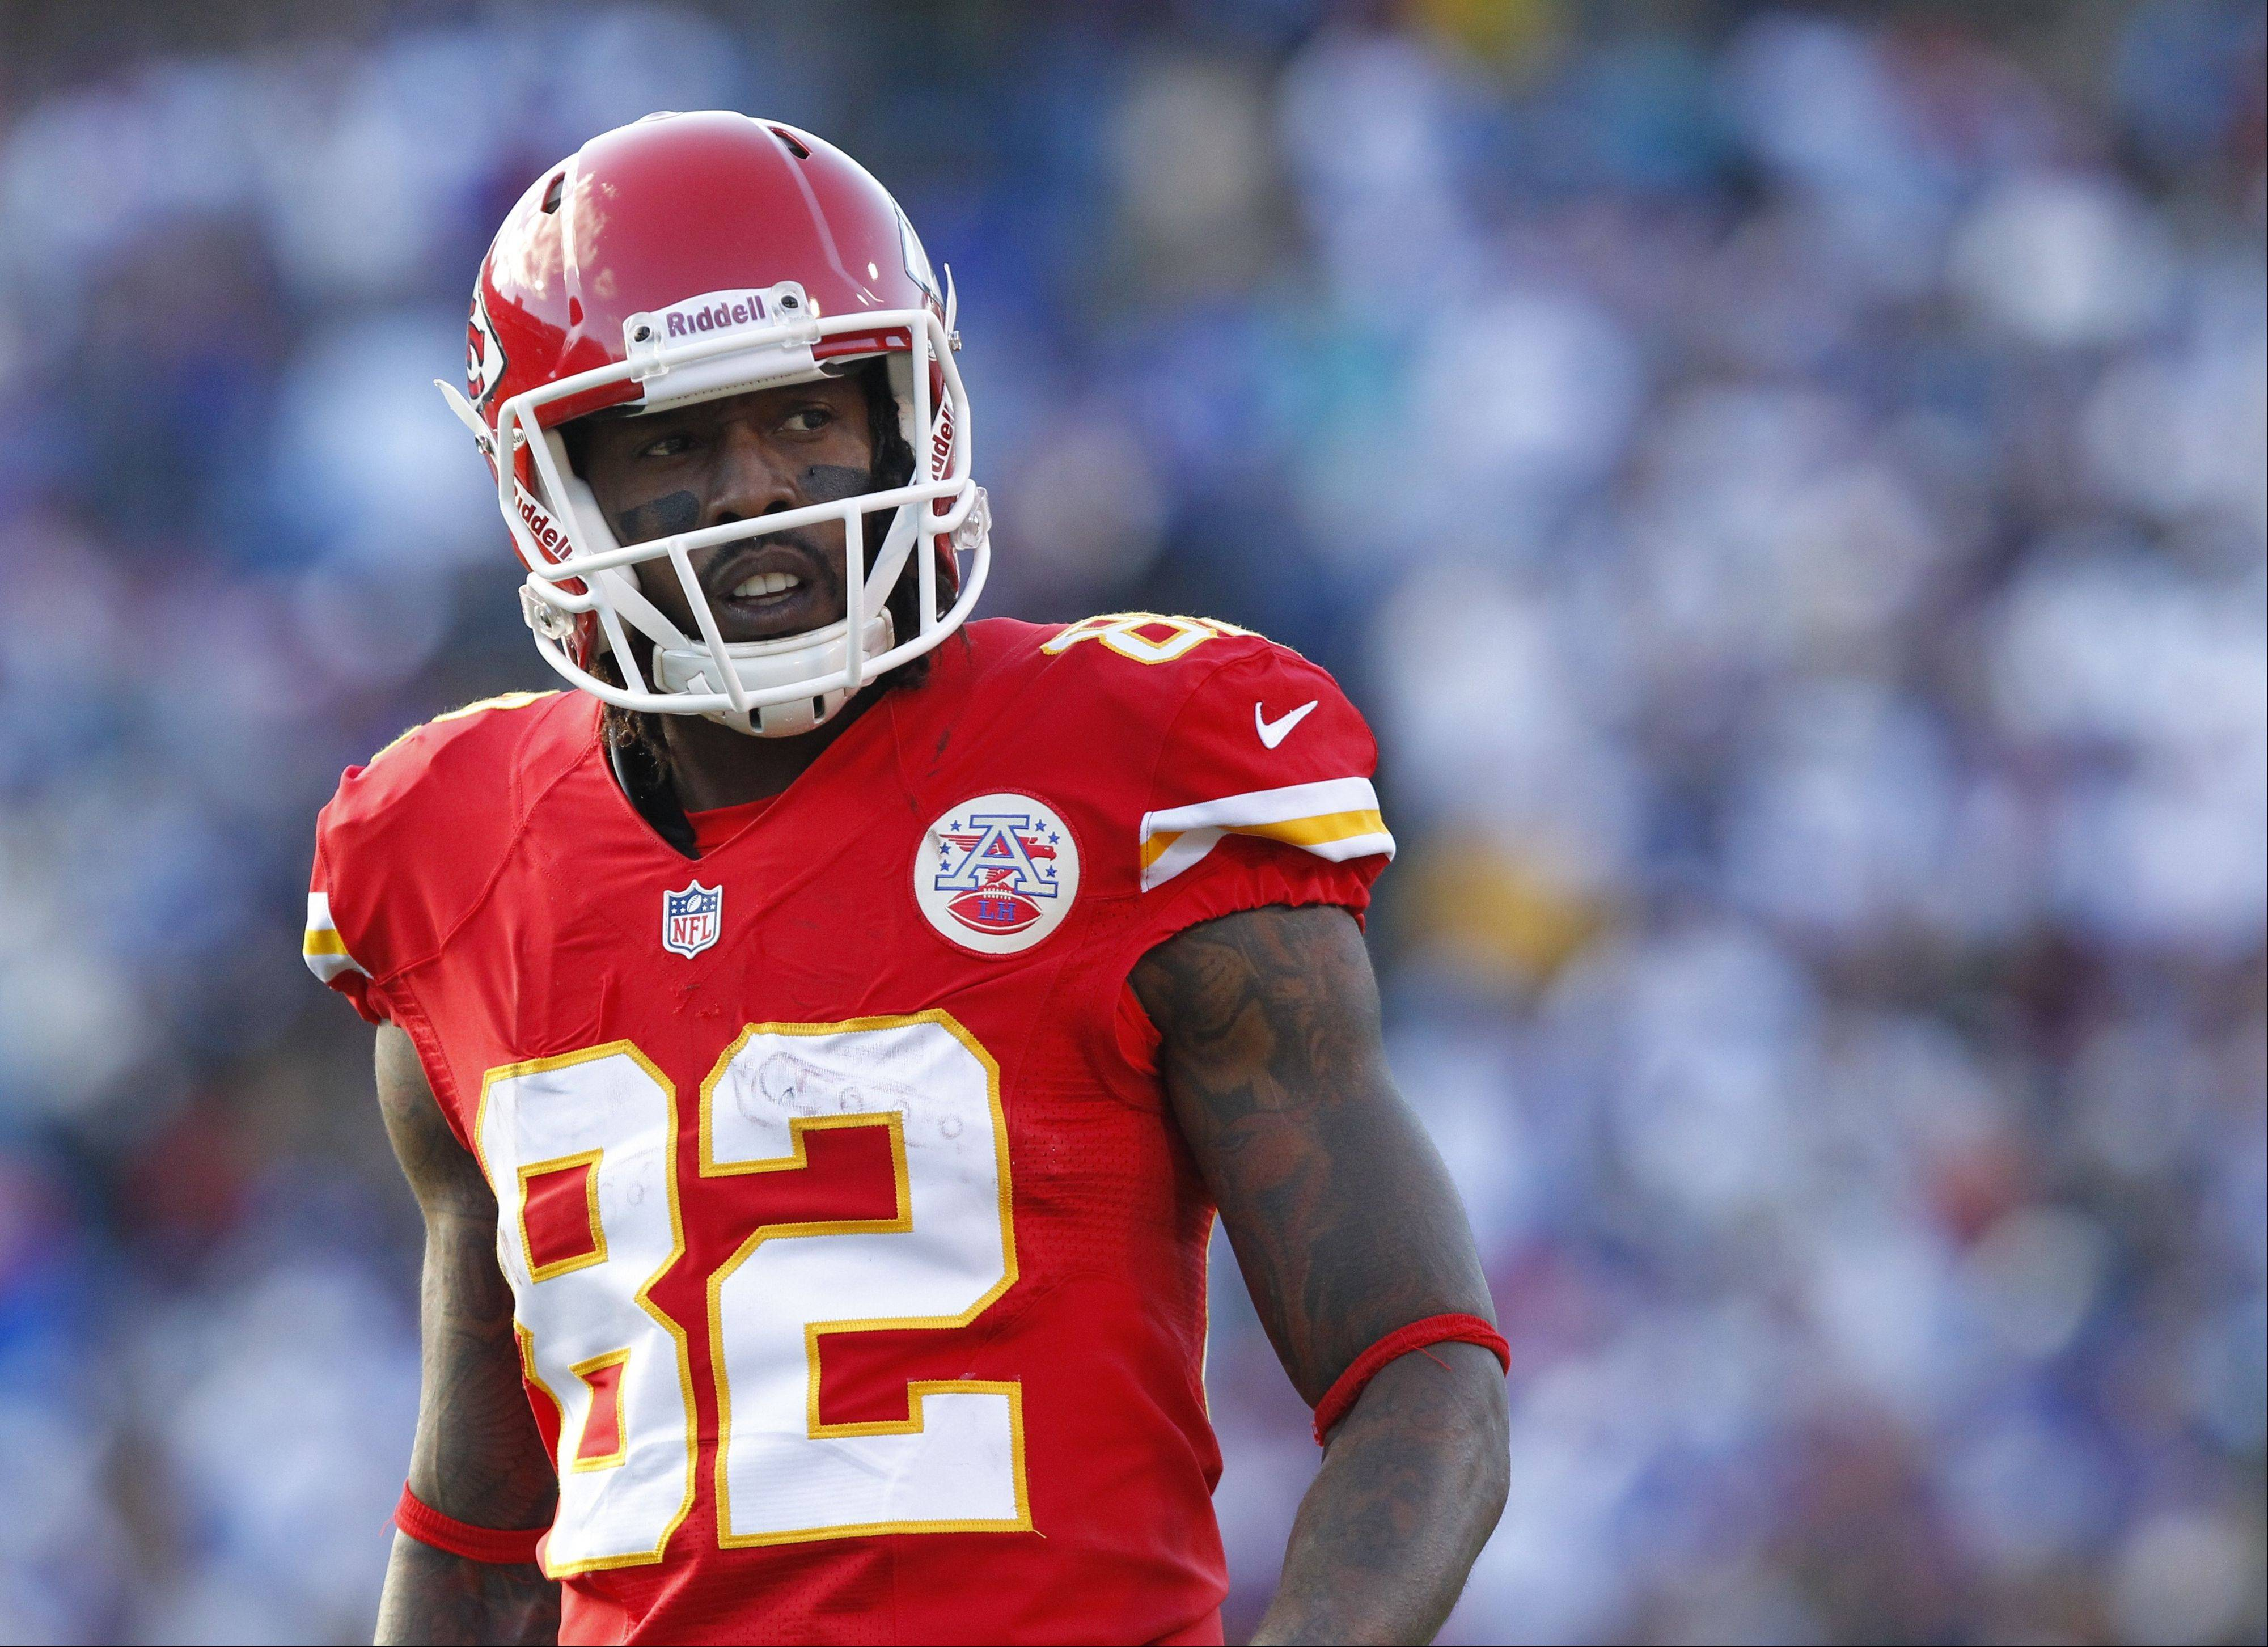 Kansas City Chiefs Dwayne Bowe prepares to play against the Buffalo Bills in Orchard Park, N.Y. Bowe was arrested outside Kansas City over the weekend on charges of speeding and possessing marijuana, authorities said Tuesday.